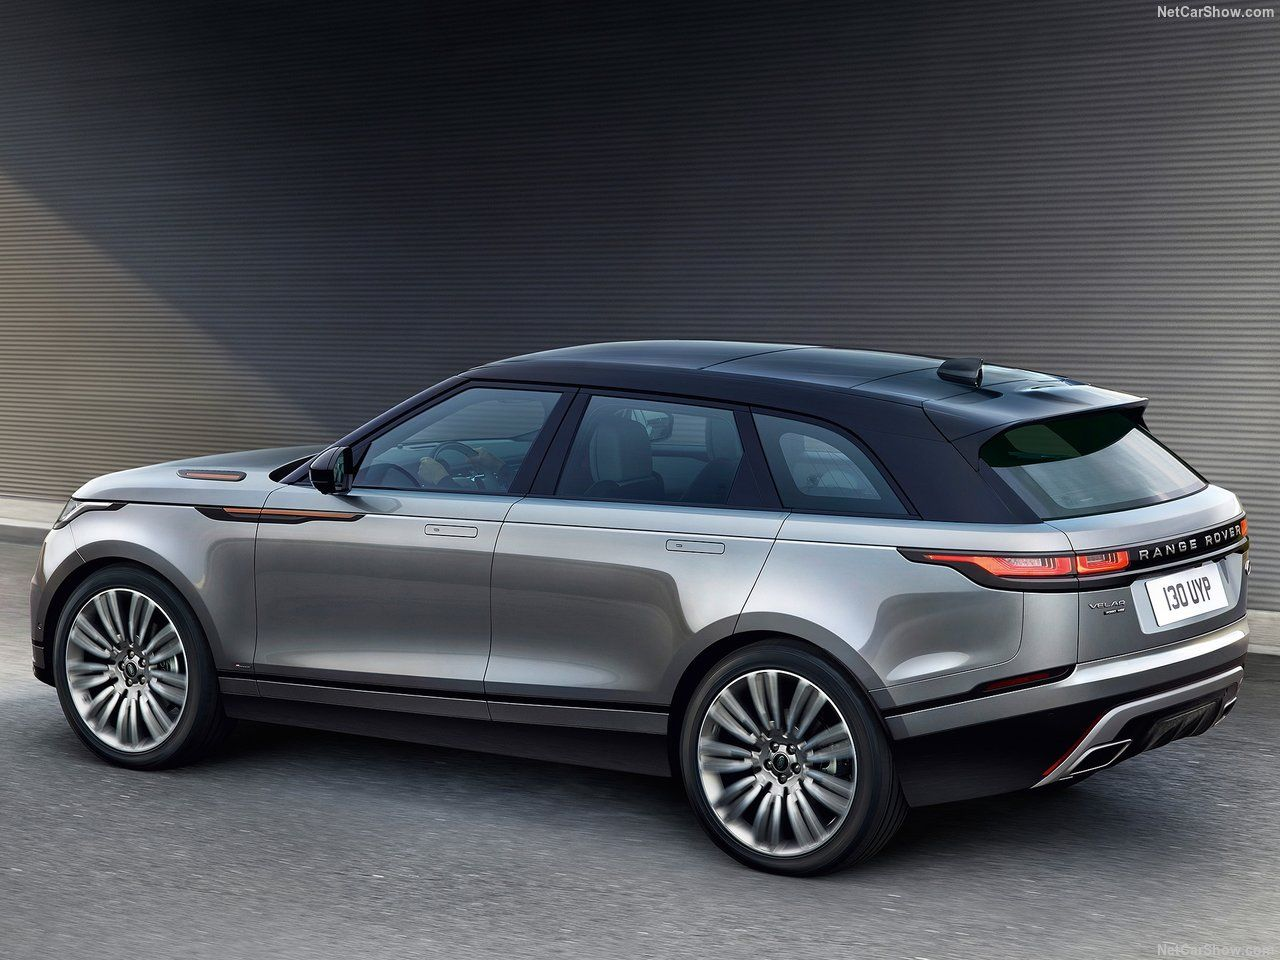 Range Rover Velar 2018 Range Rover Land Rover Range Rover Supercharged